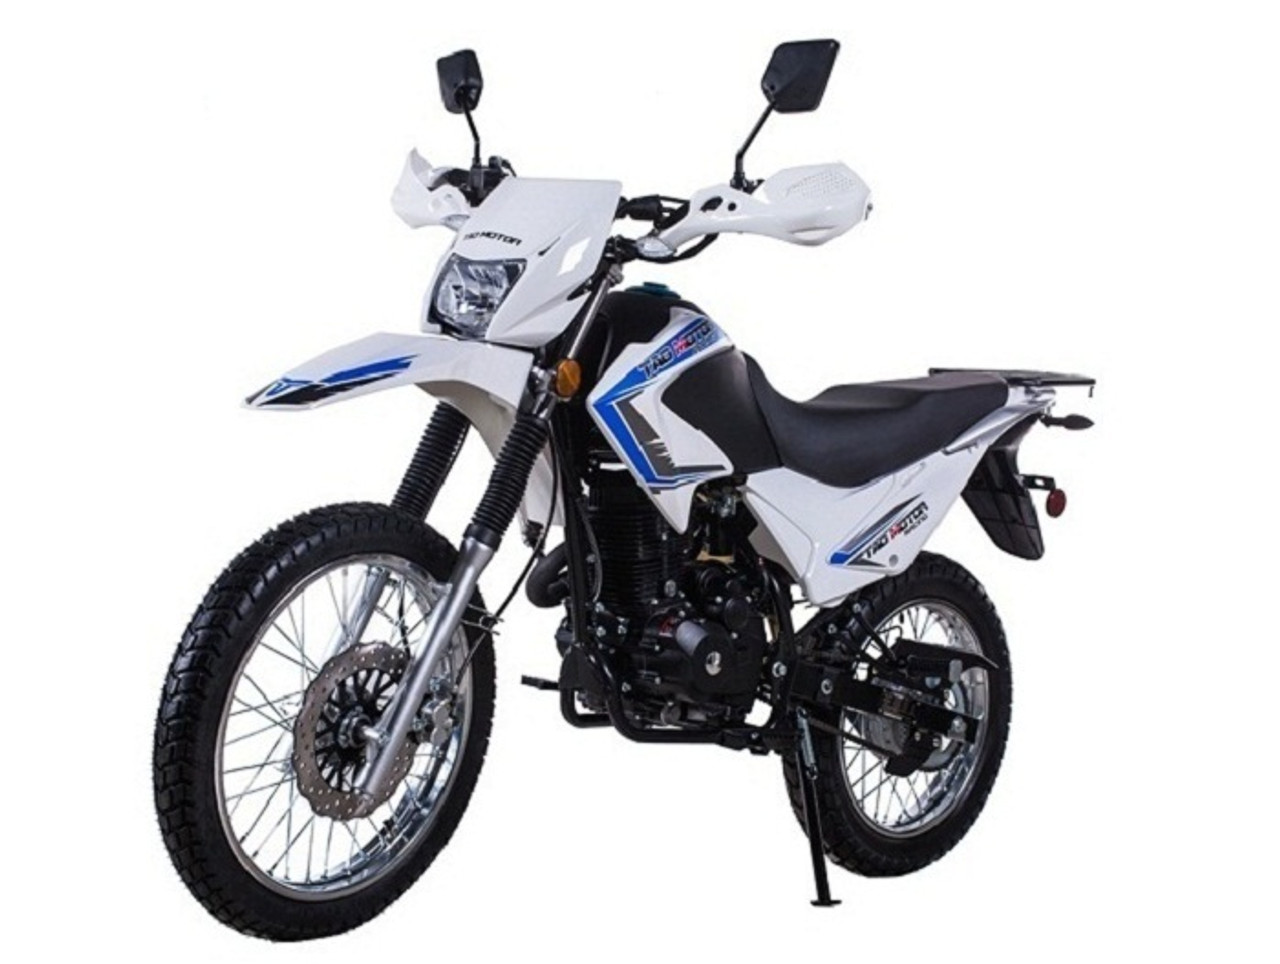 Taotao TBR7 On Road Highway 229cc Motorcycle, Electric Start, Kick Start,- Fully Assembled and Tested